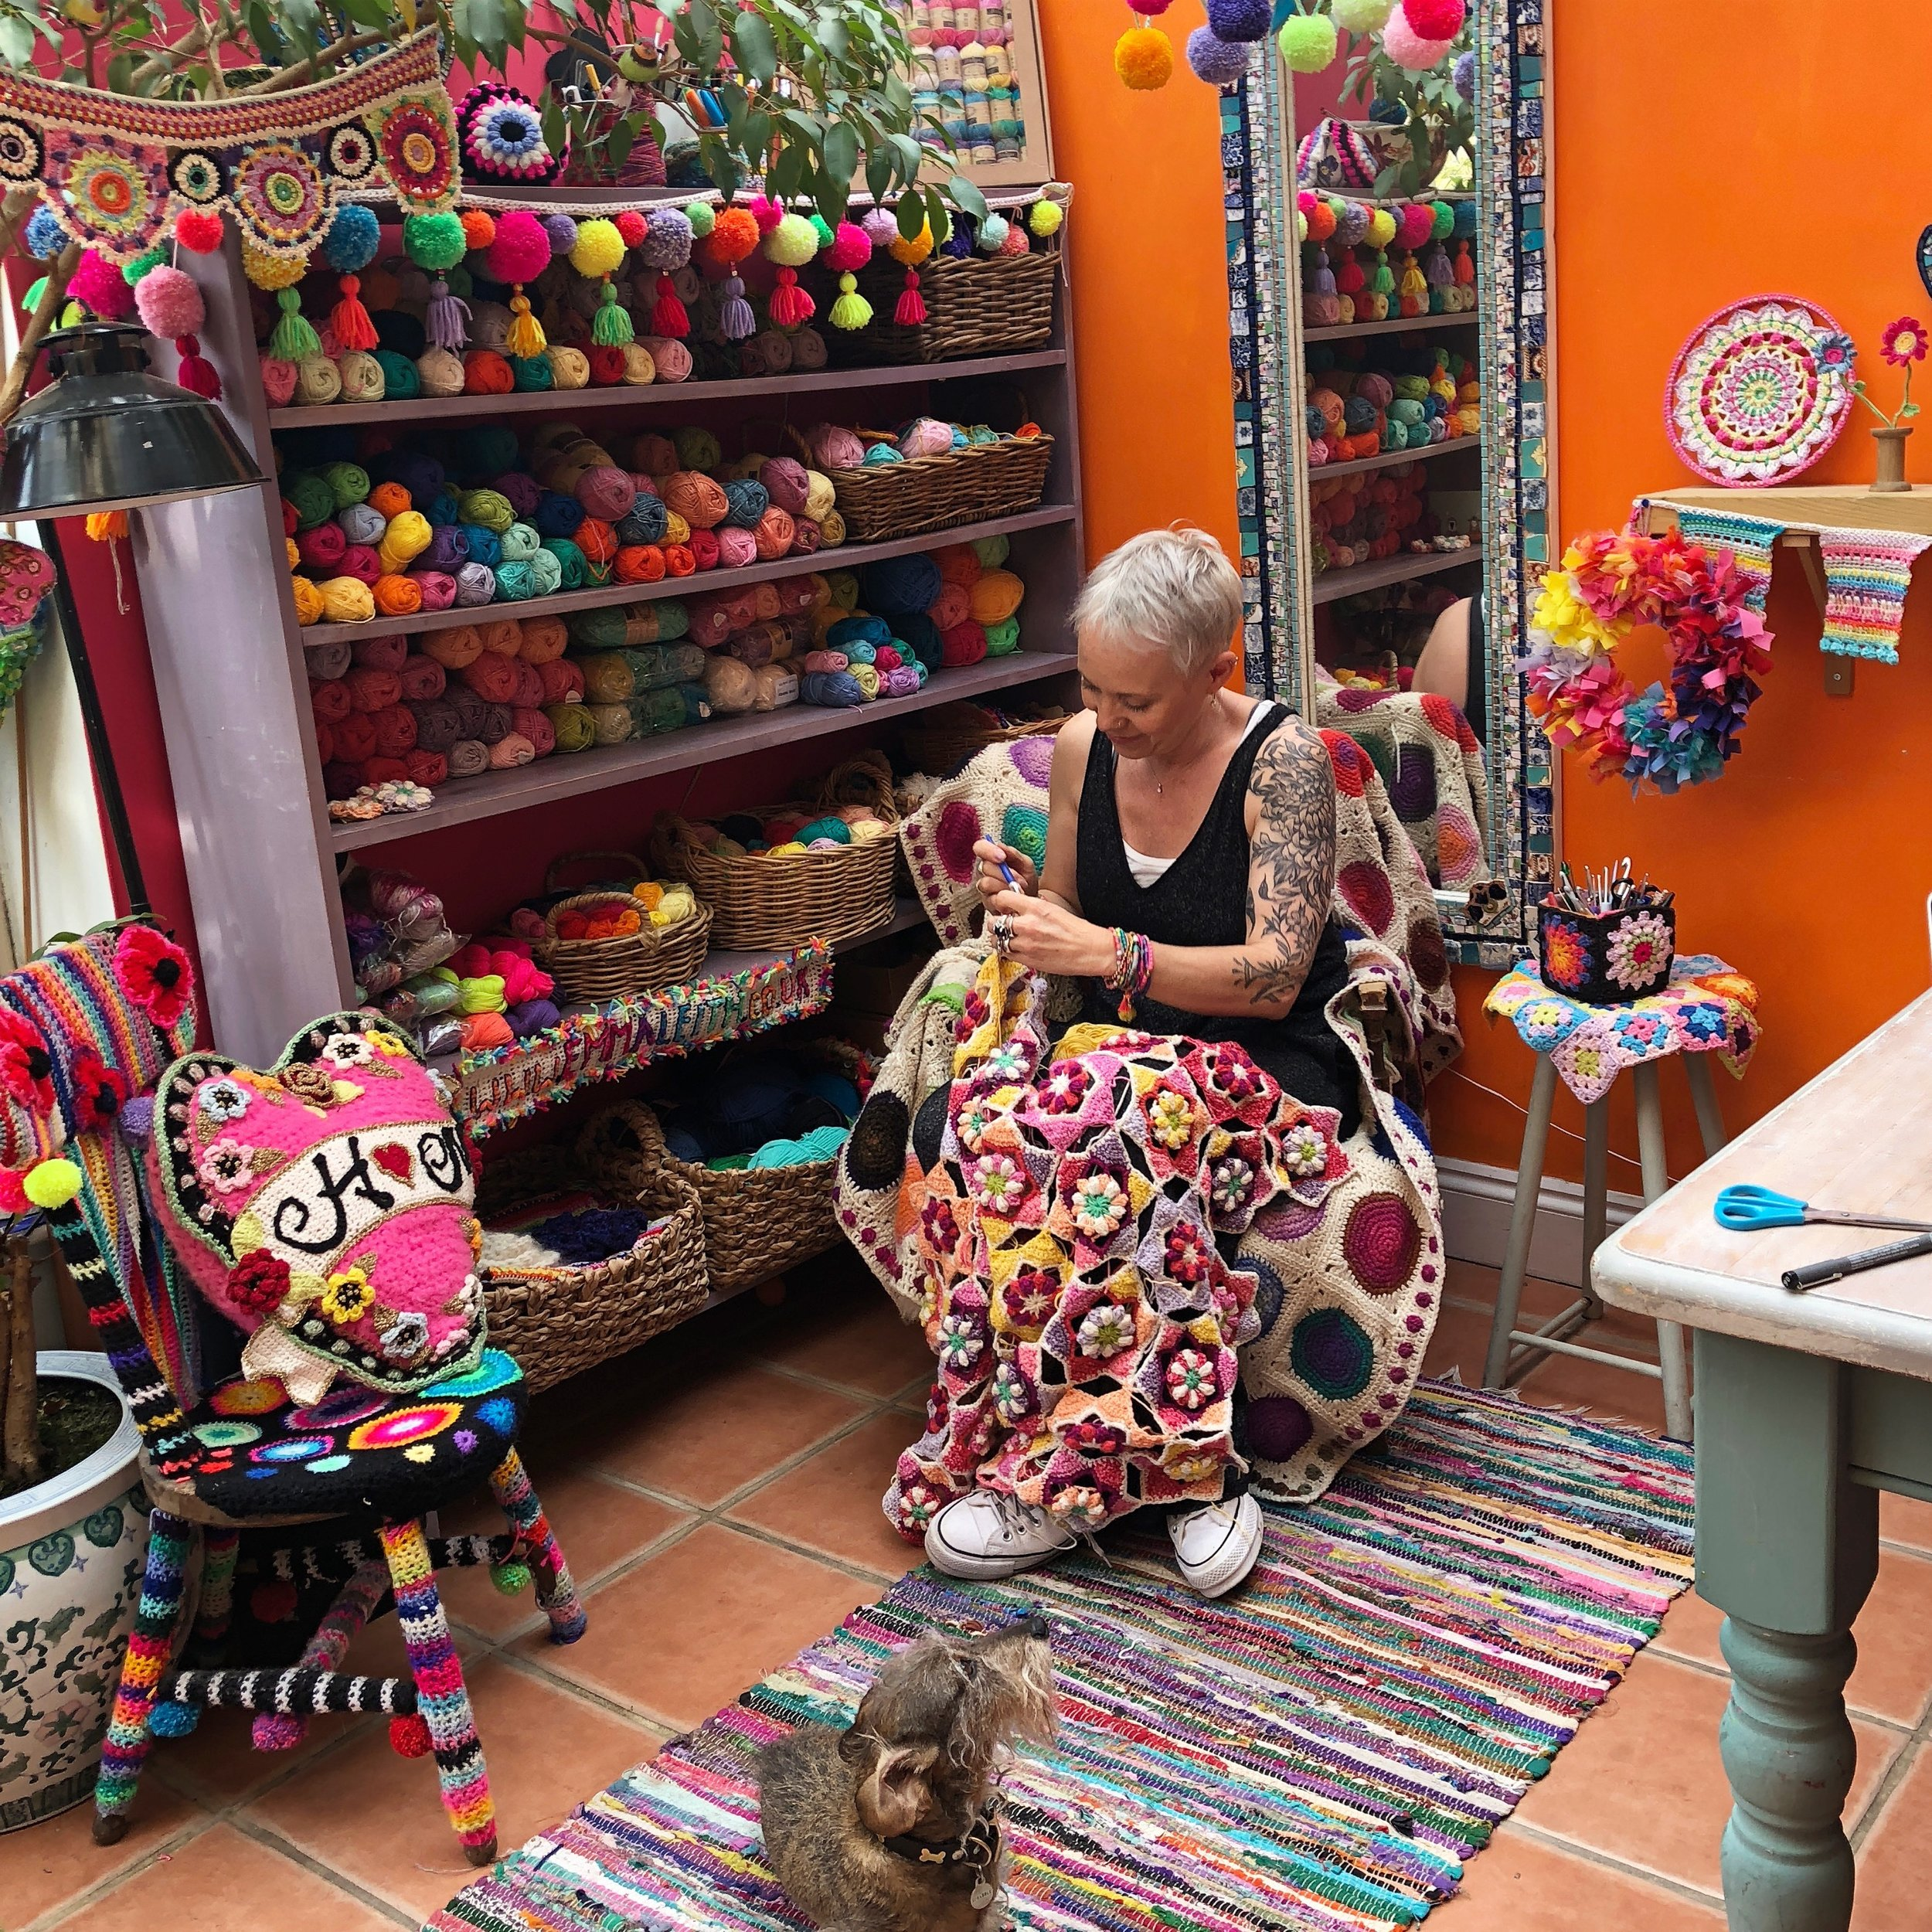 Crochet artist Emma Leith in her studio